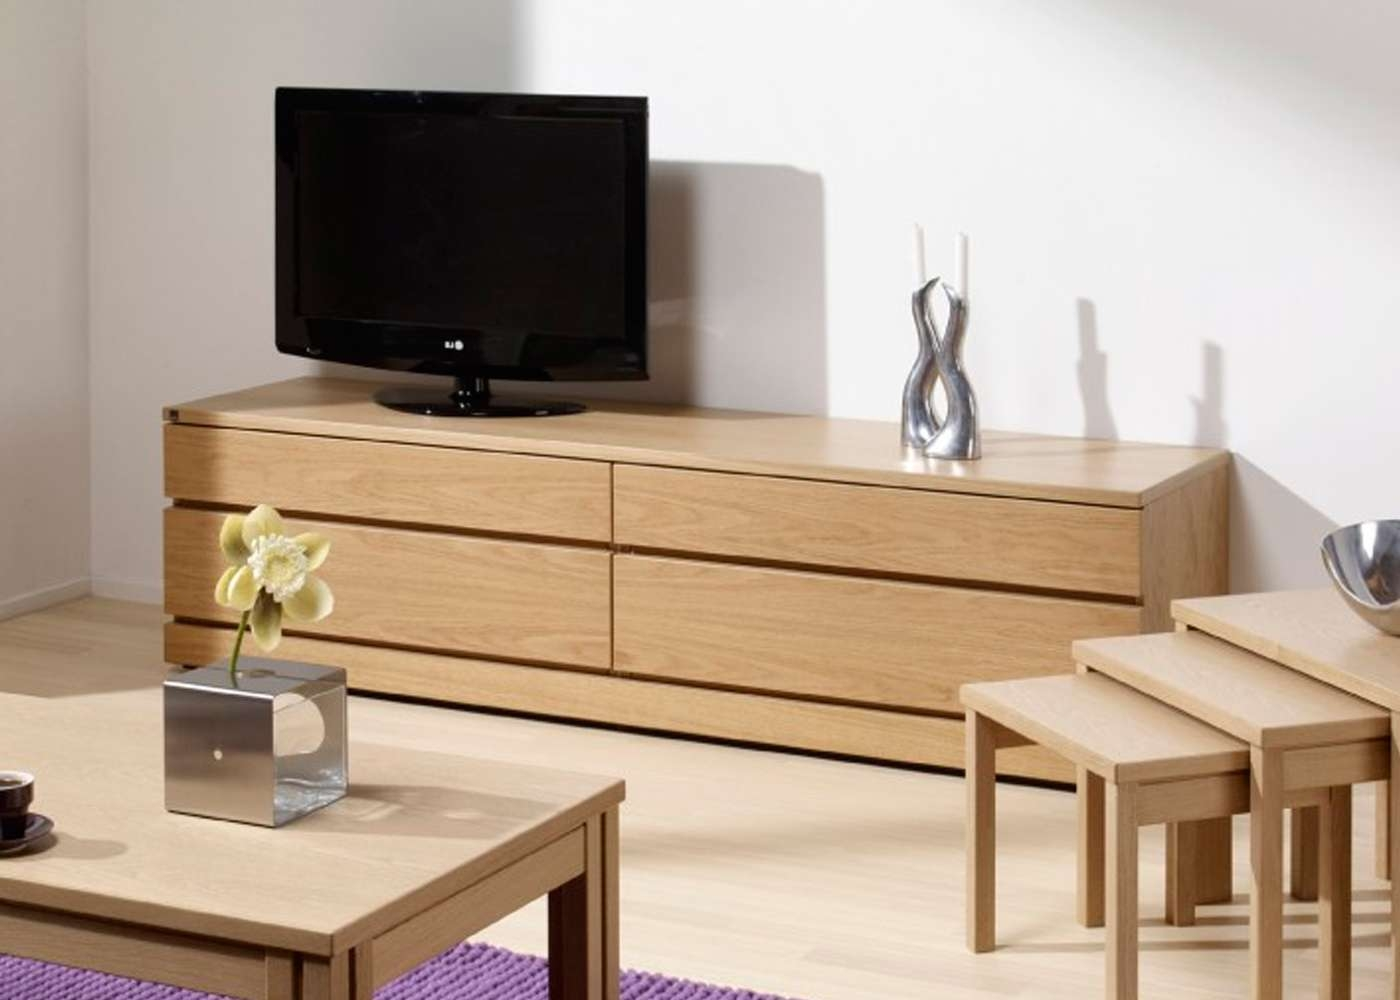 Skovby Sm87 Tv Cabinet In Light Oak Finish 1 – Midfurn Furniture With Regard To Light Oak Tv Cabinets (View 15 of 20)